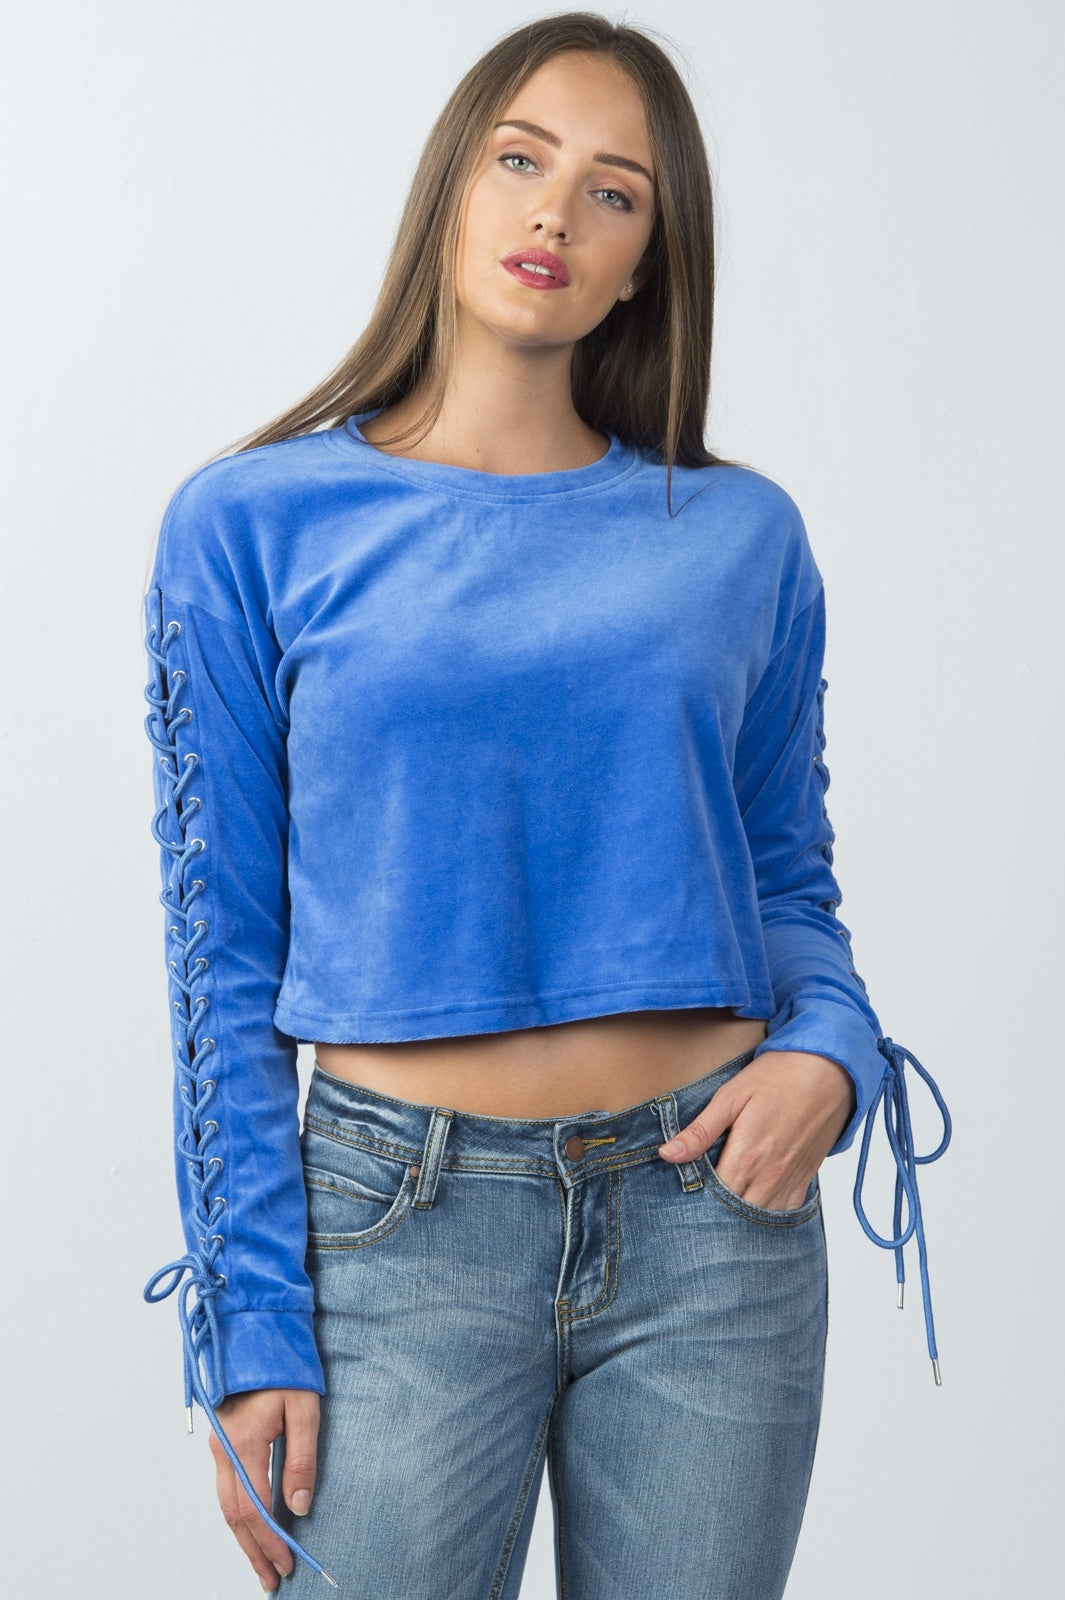 Ladies fashion royal lace up sleeve cropped sweatshirt